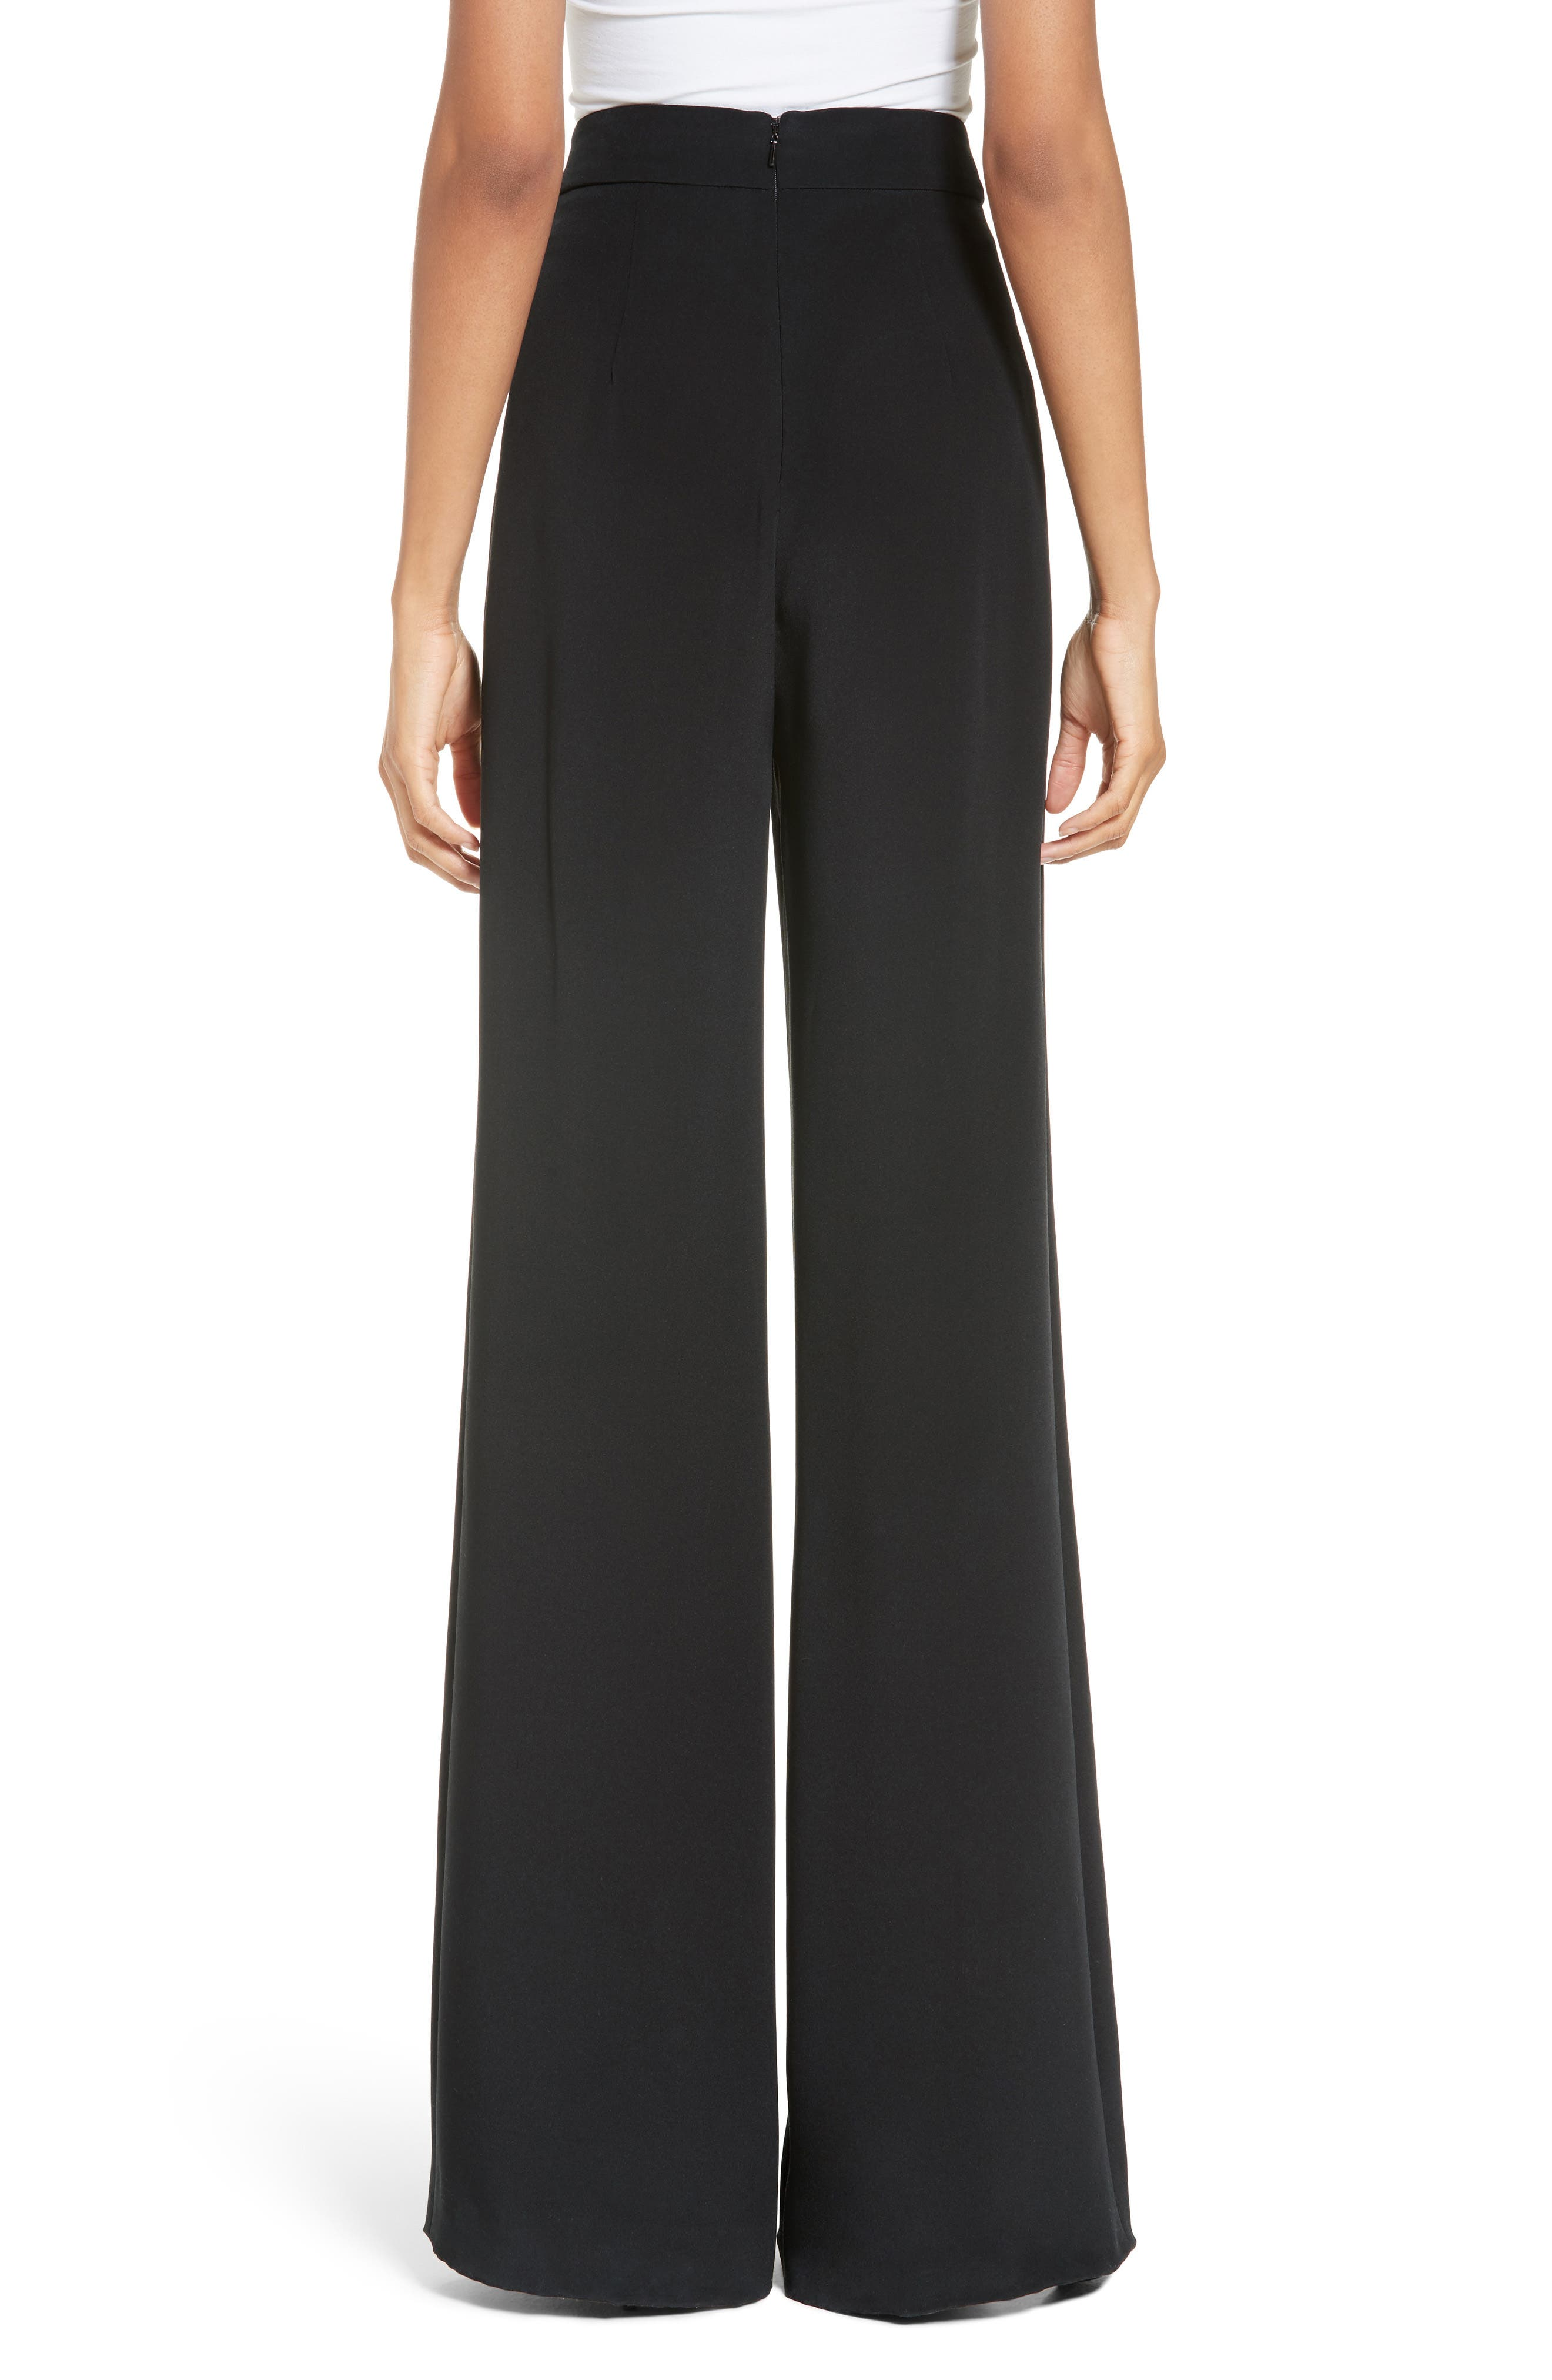 Slit Silk High Waisted Pants,                             Alternate thumbnail 2, color,                             Black